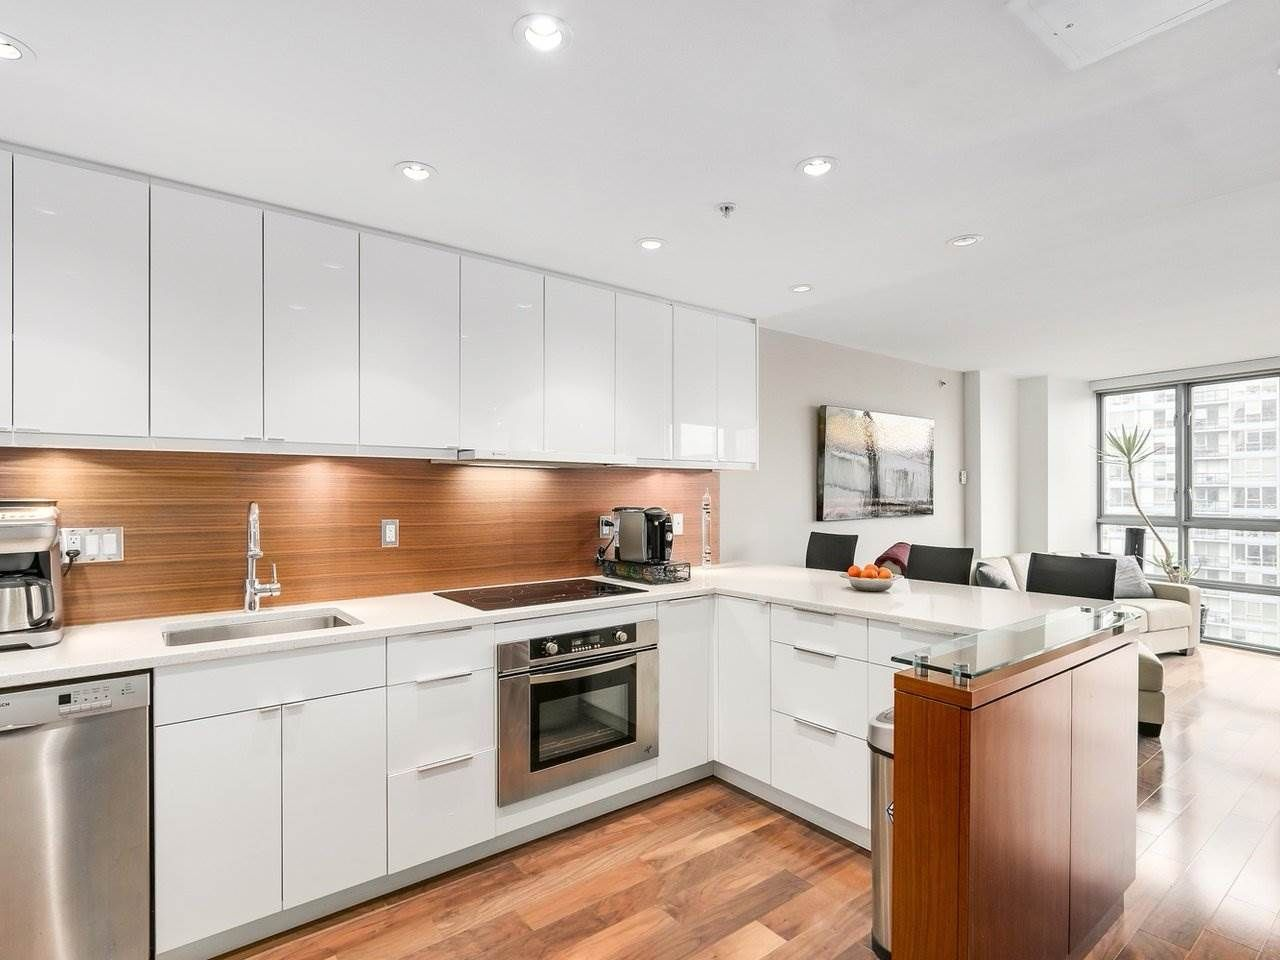 """Main Photo: 2202 930 CAMBIE Street in Vancouver: Yaletown Condo for sale in """"PACIFIC PLACE LANDMARK 2"""" (Vancouver West)  : MLS®# R2161898"""